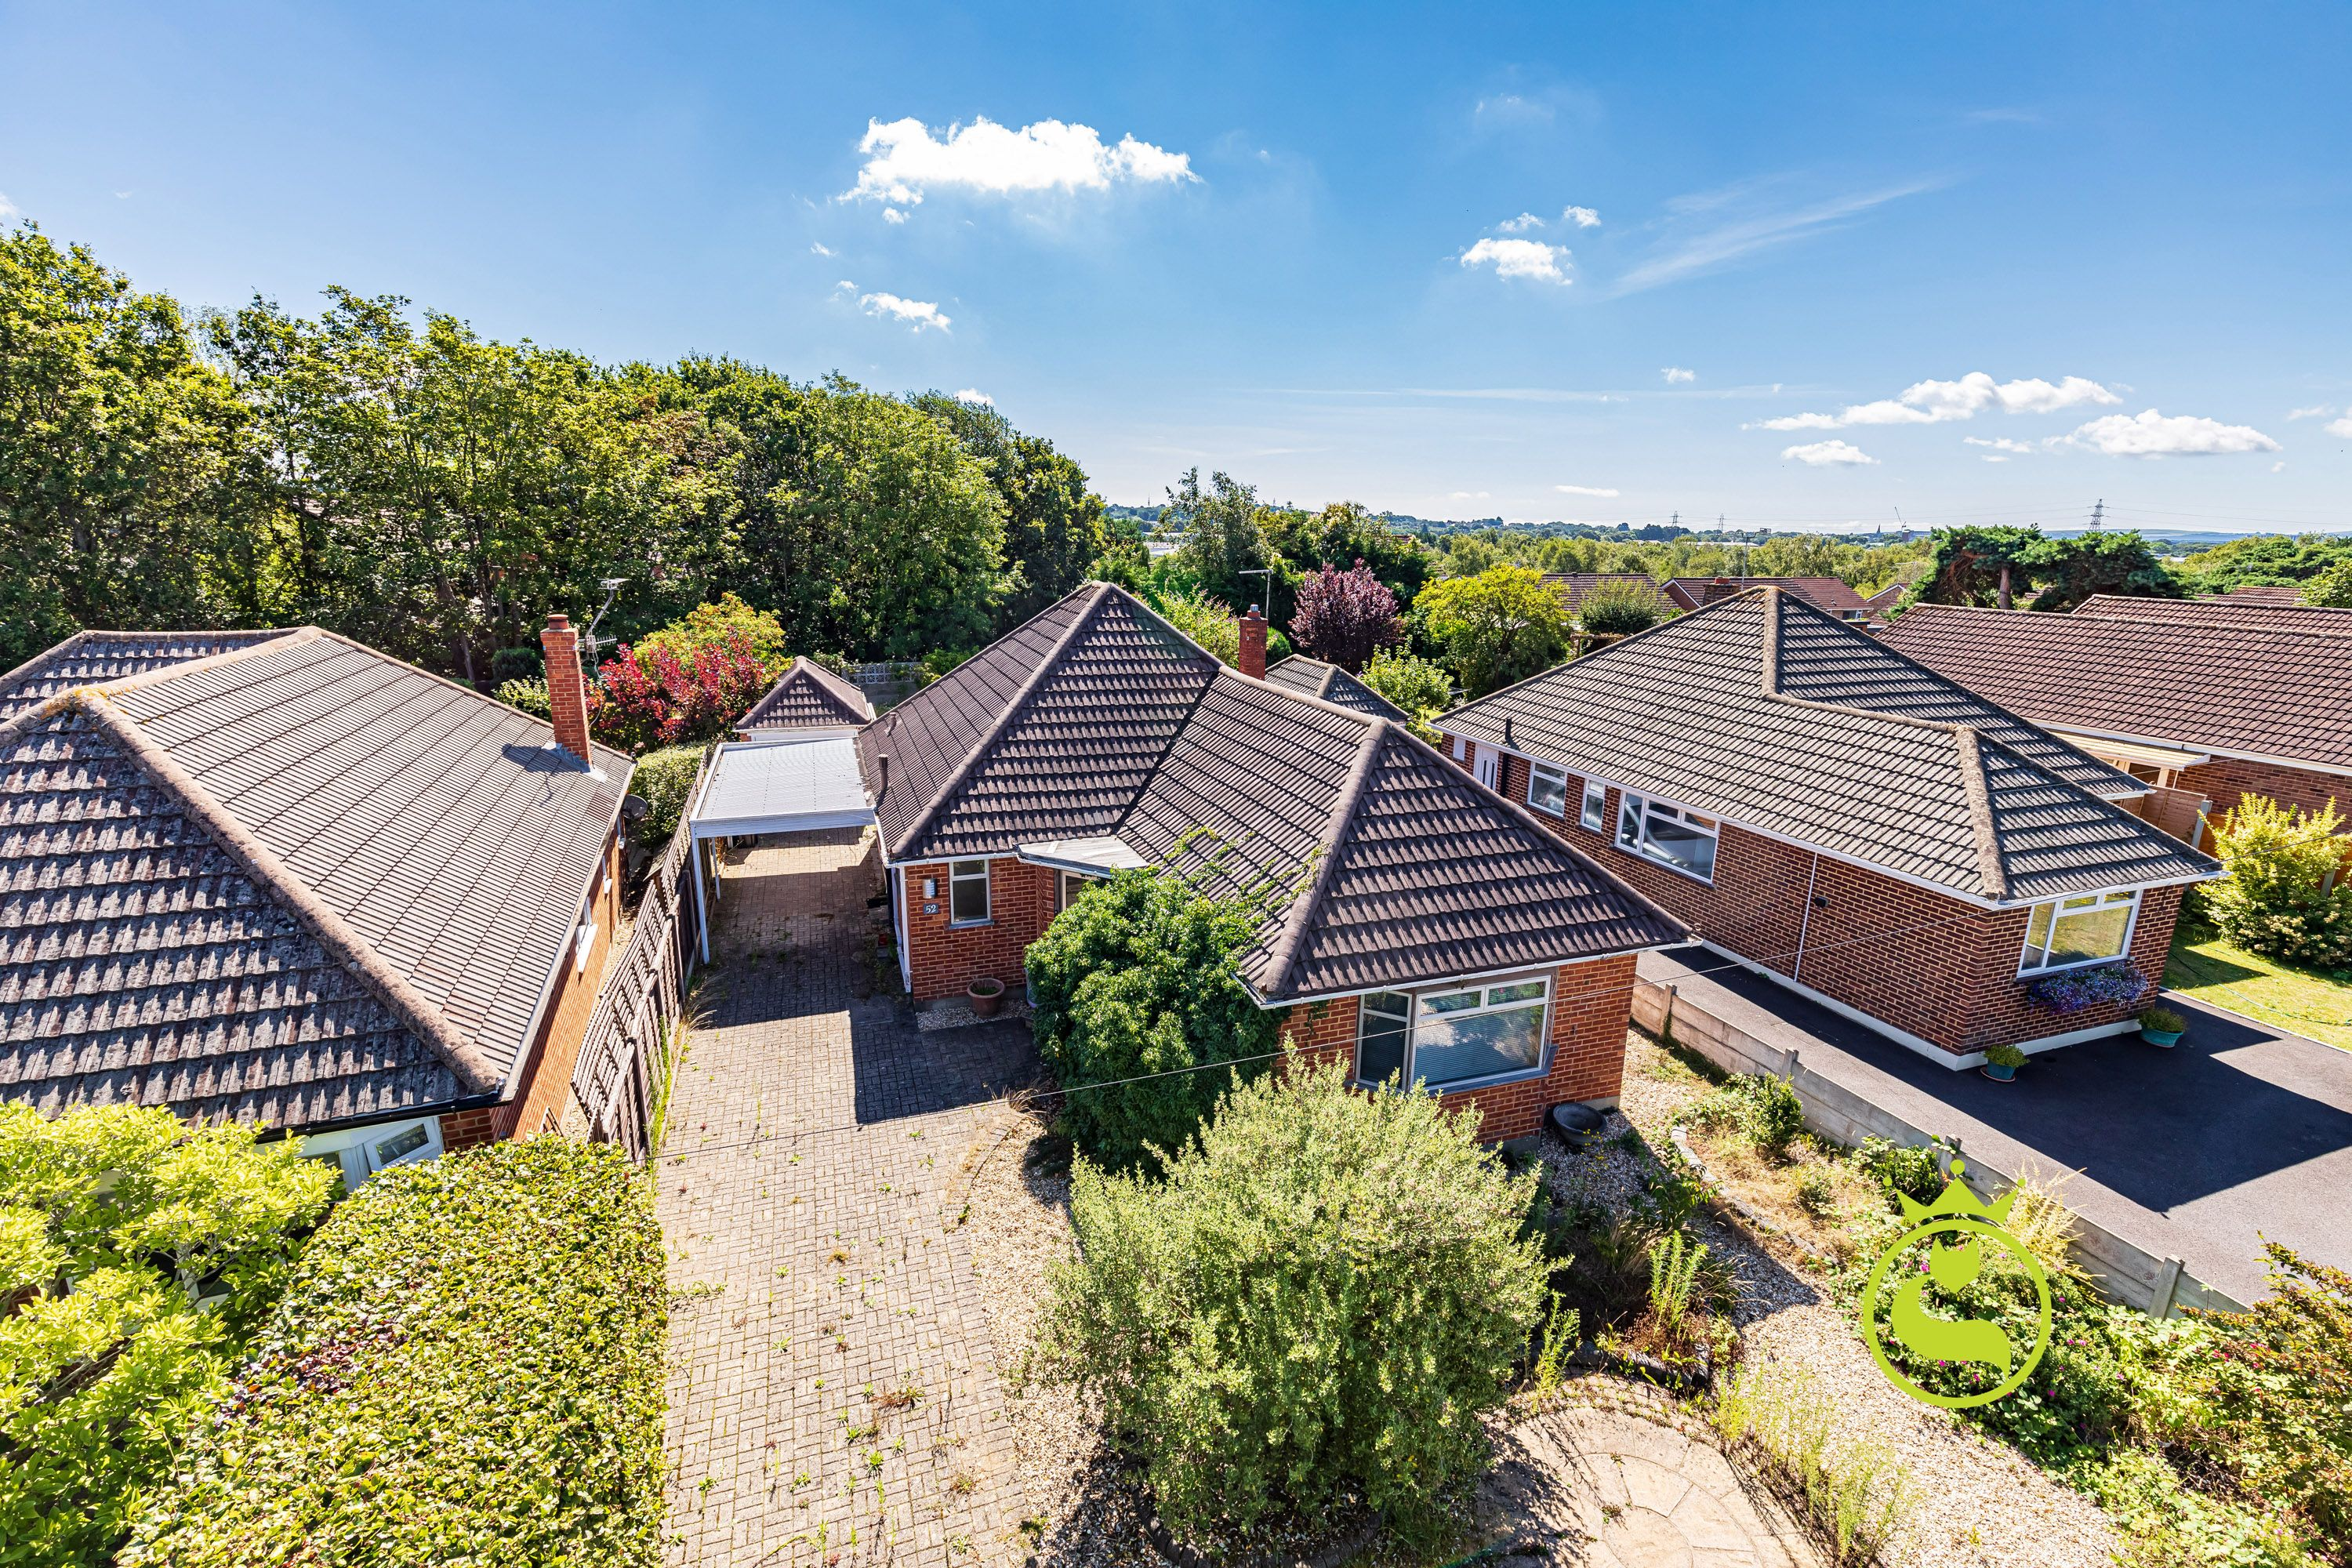 A detached two bedroom bungalow in need of complete modernisation & renovation benefitting from a garage & driveway. Situated in a popular residential road close to local amenities & schools.